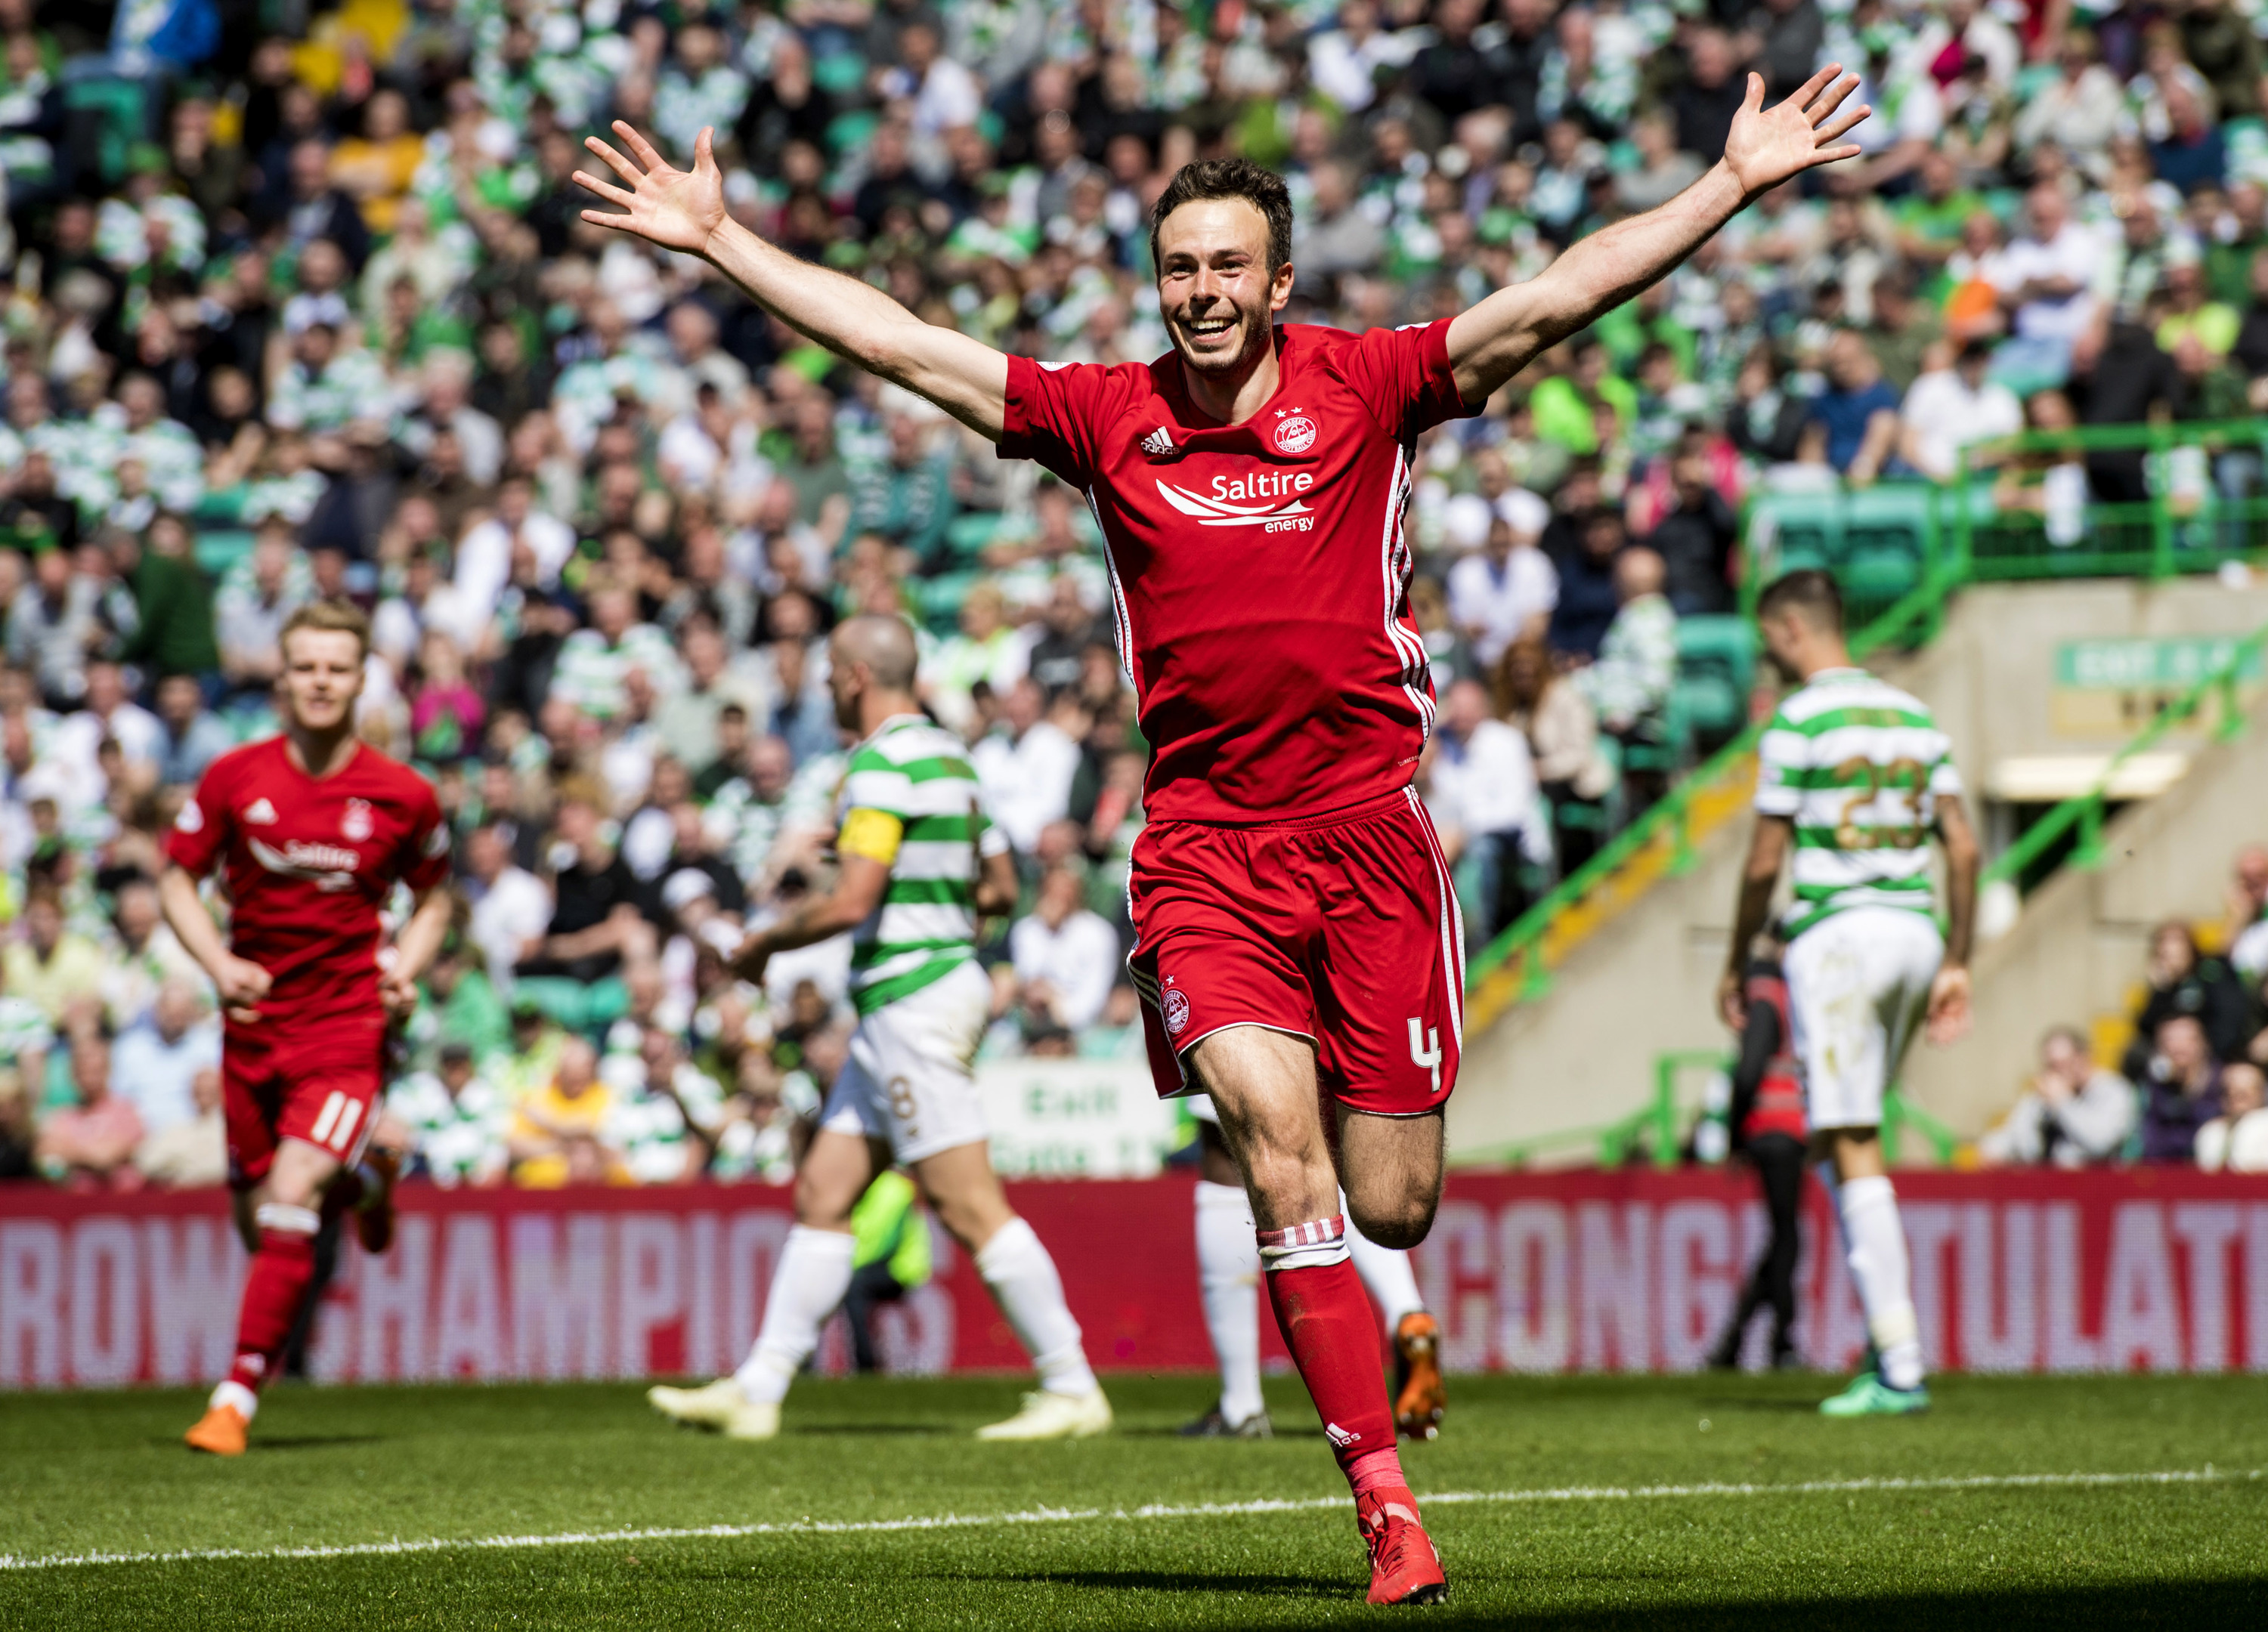 Lewis compared the game to the season-ending win against Celtic in 2018.